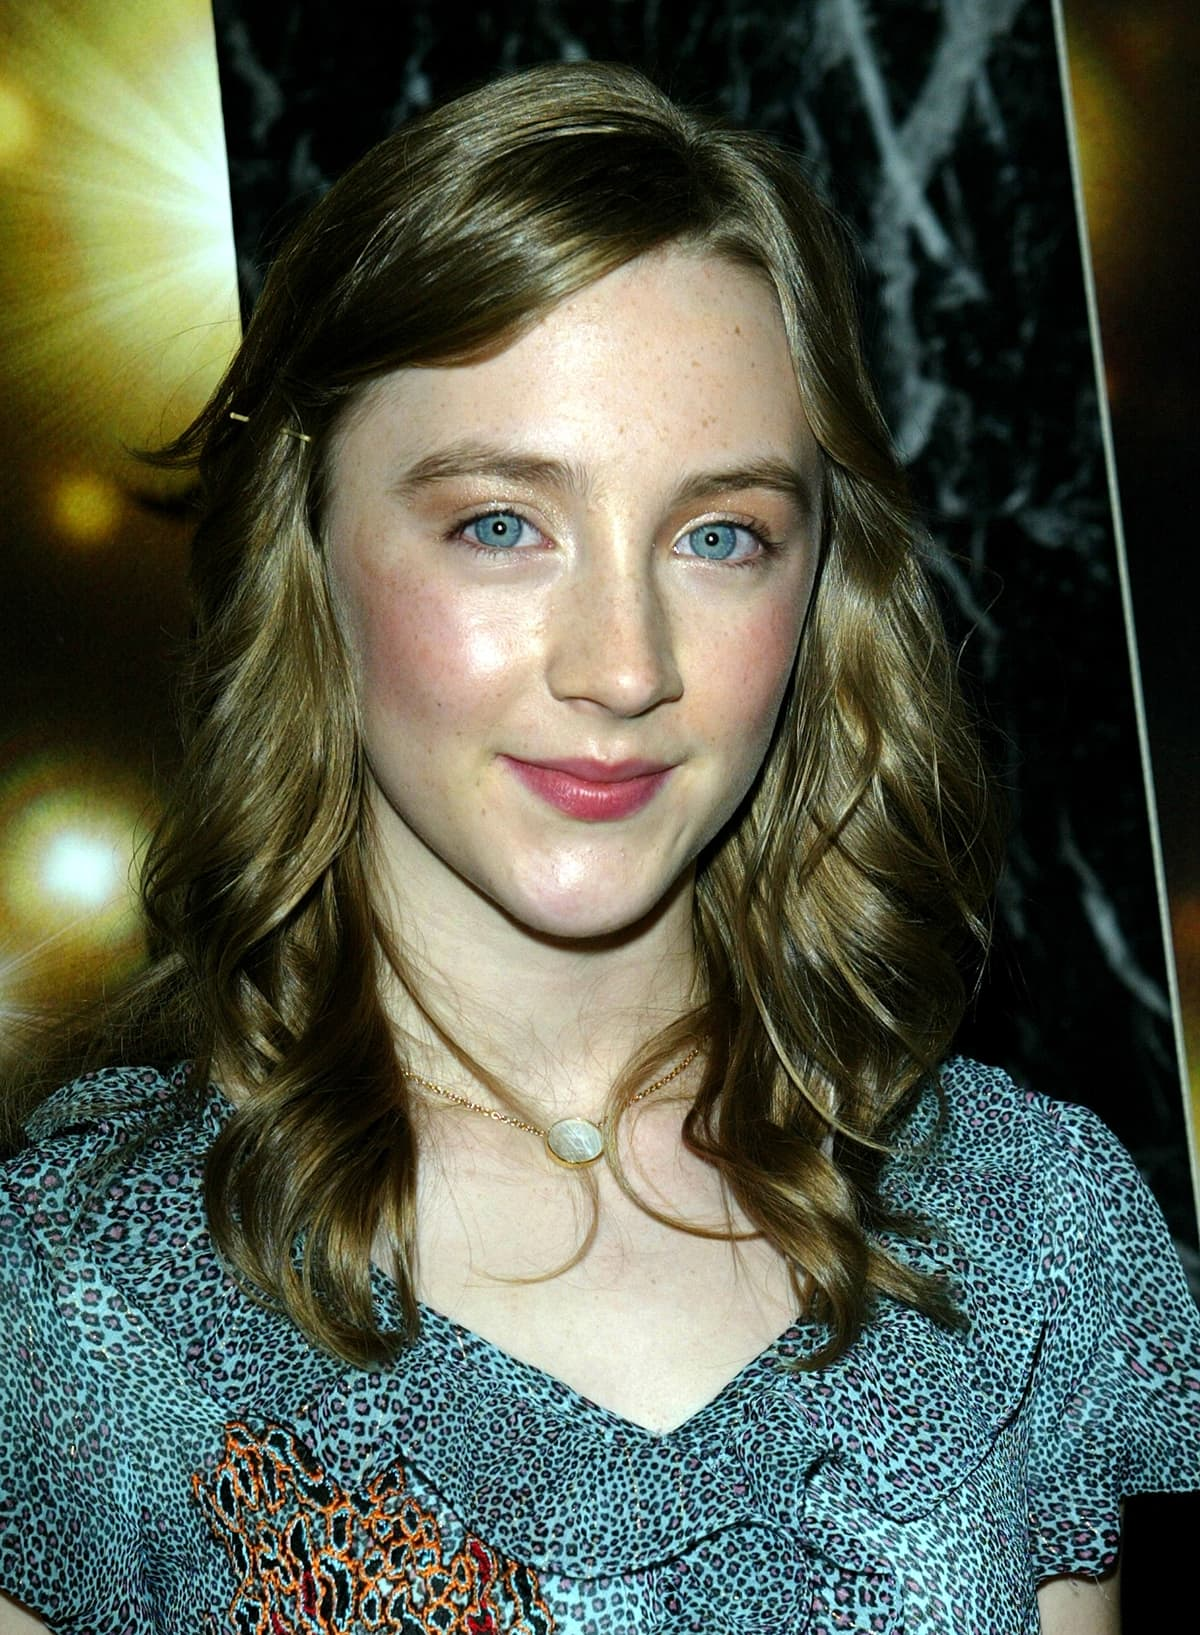 """The then 14-year-old Saoirse Ronan at the premiere of """"City of Ember"""""""